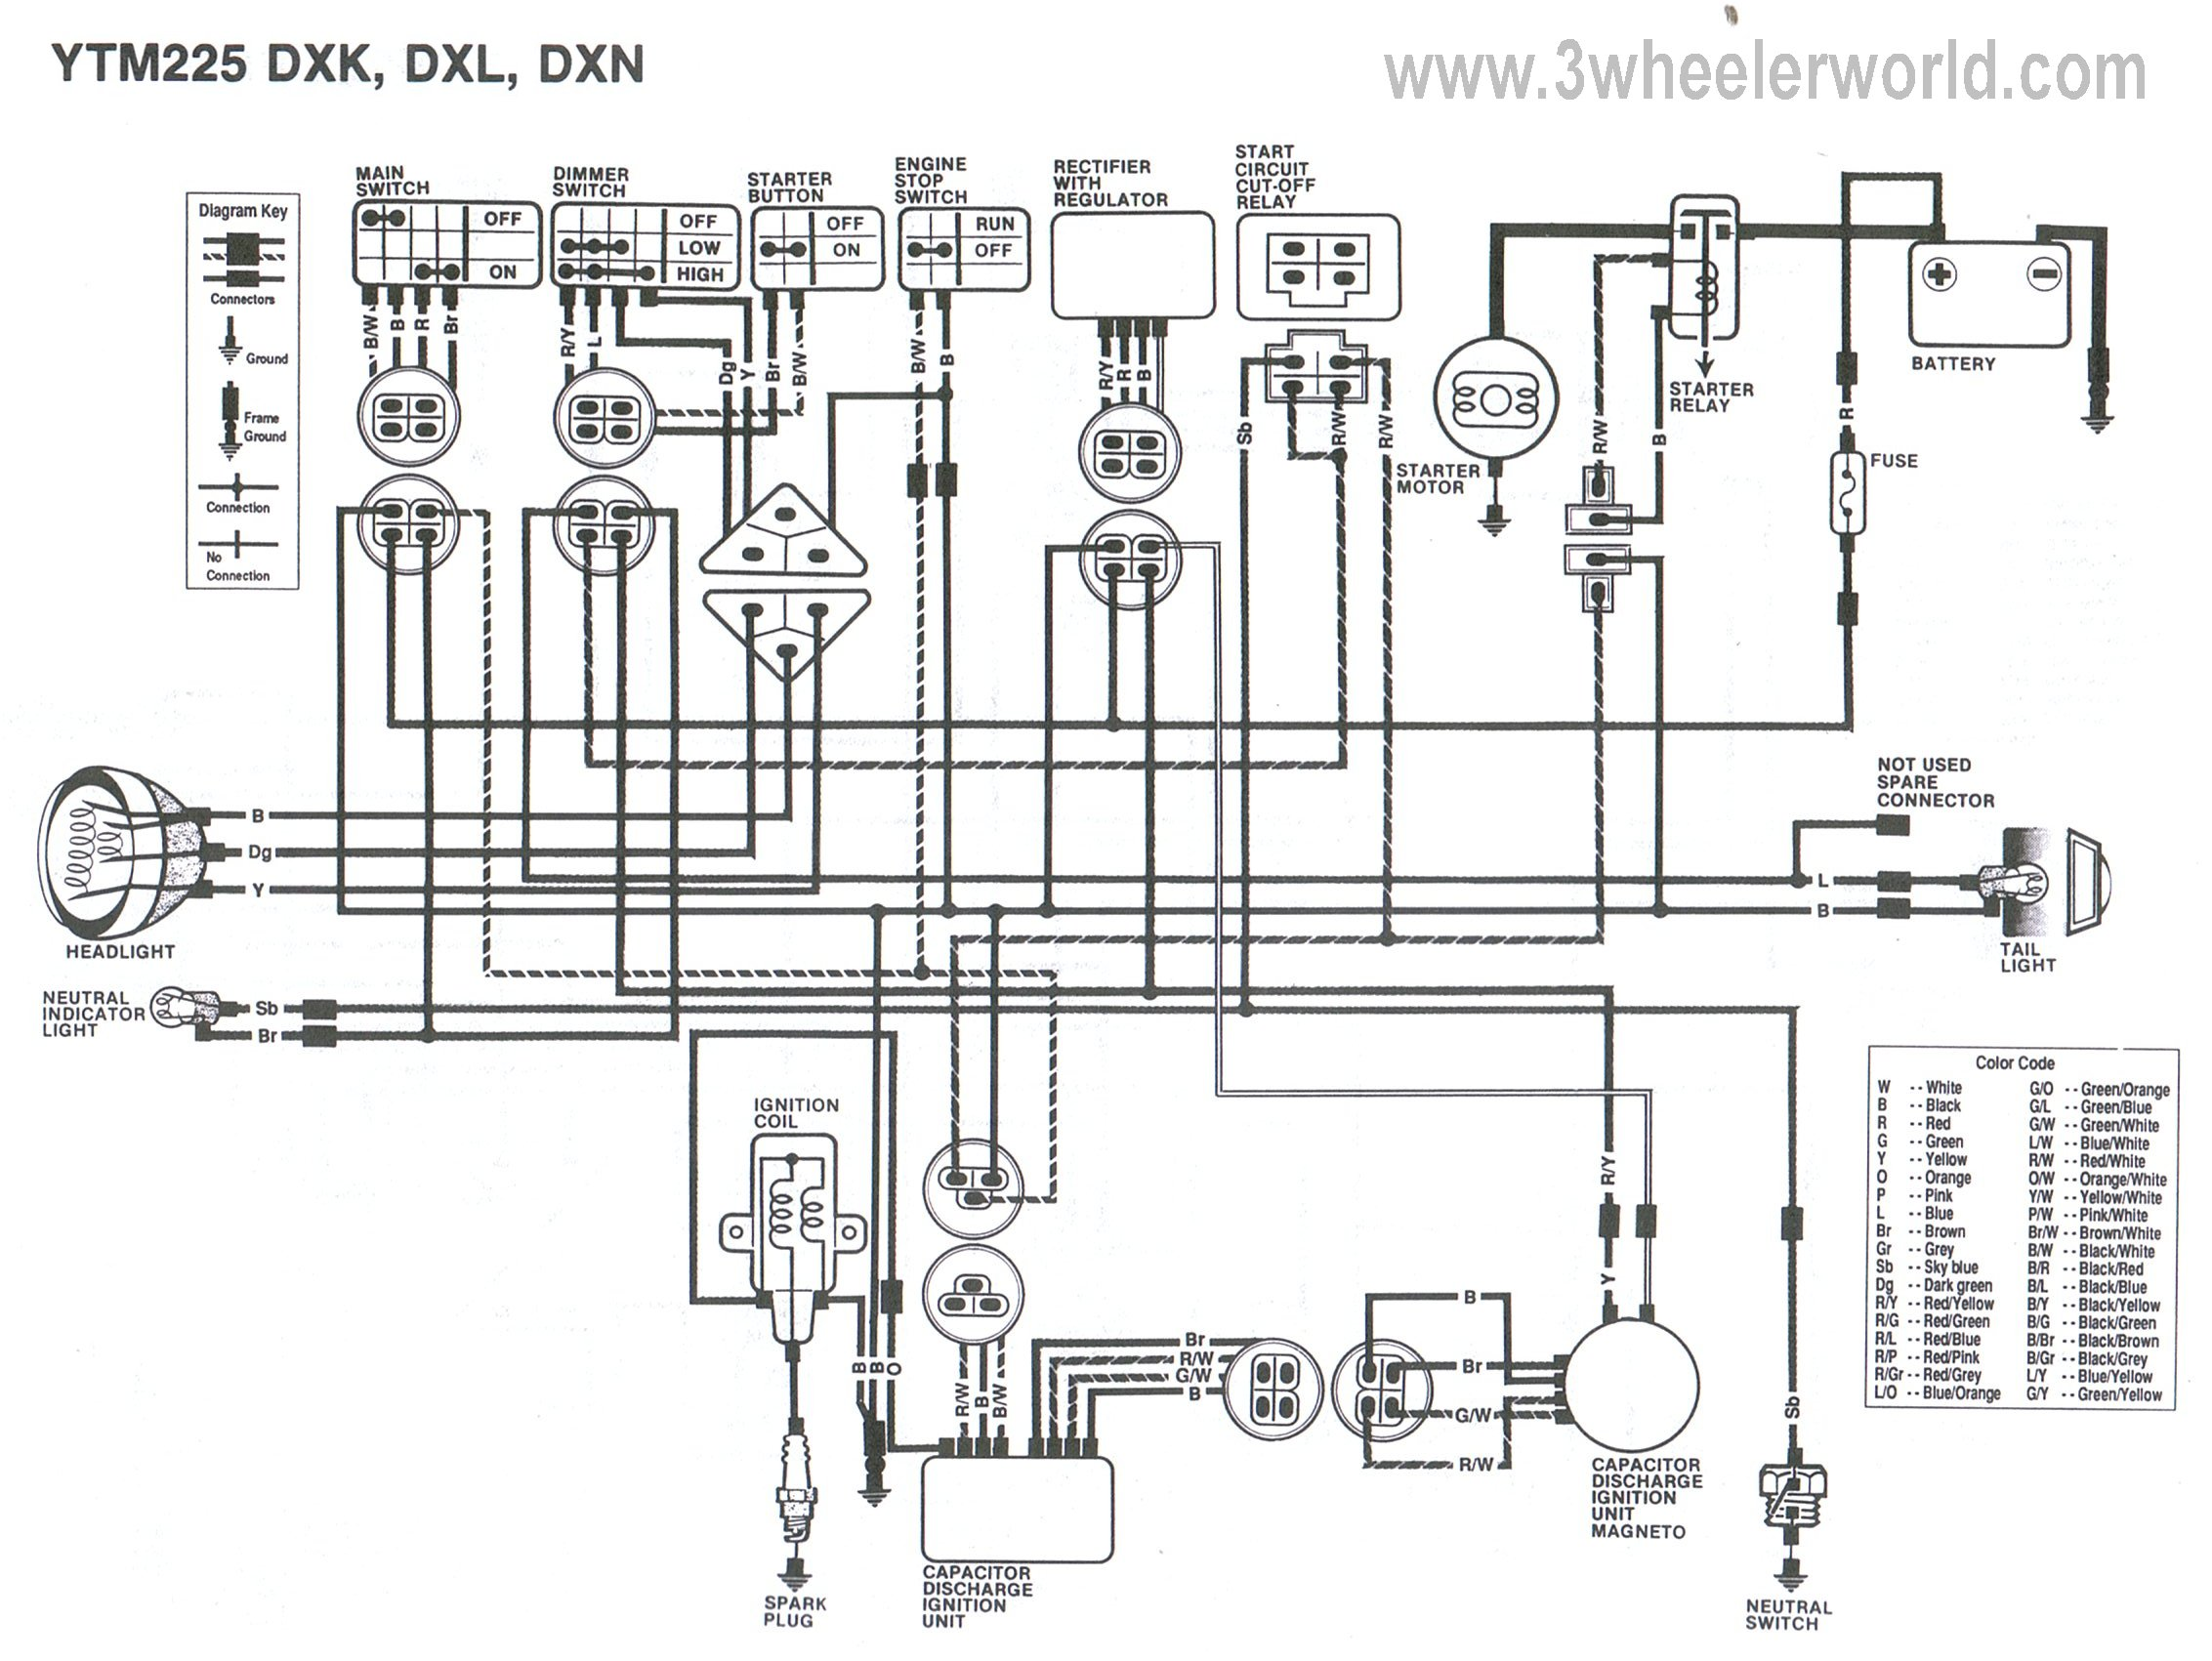 Yamaha 4 3 Wiring Diagram Free For You Tach Wheeler World Tech Help Diagrams Rh 3wheelerworld Com Ignition Outboard Motor